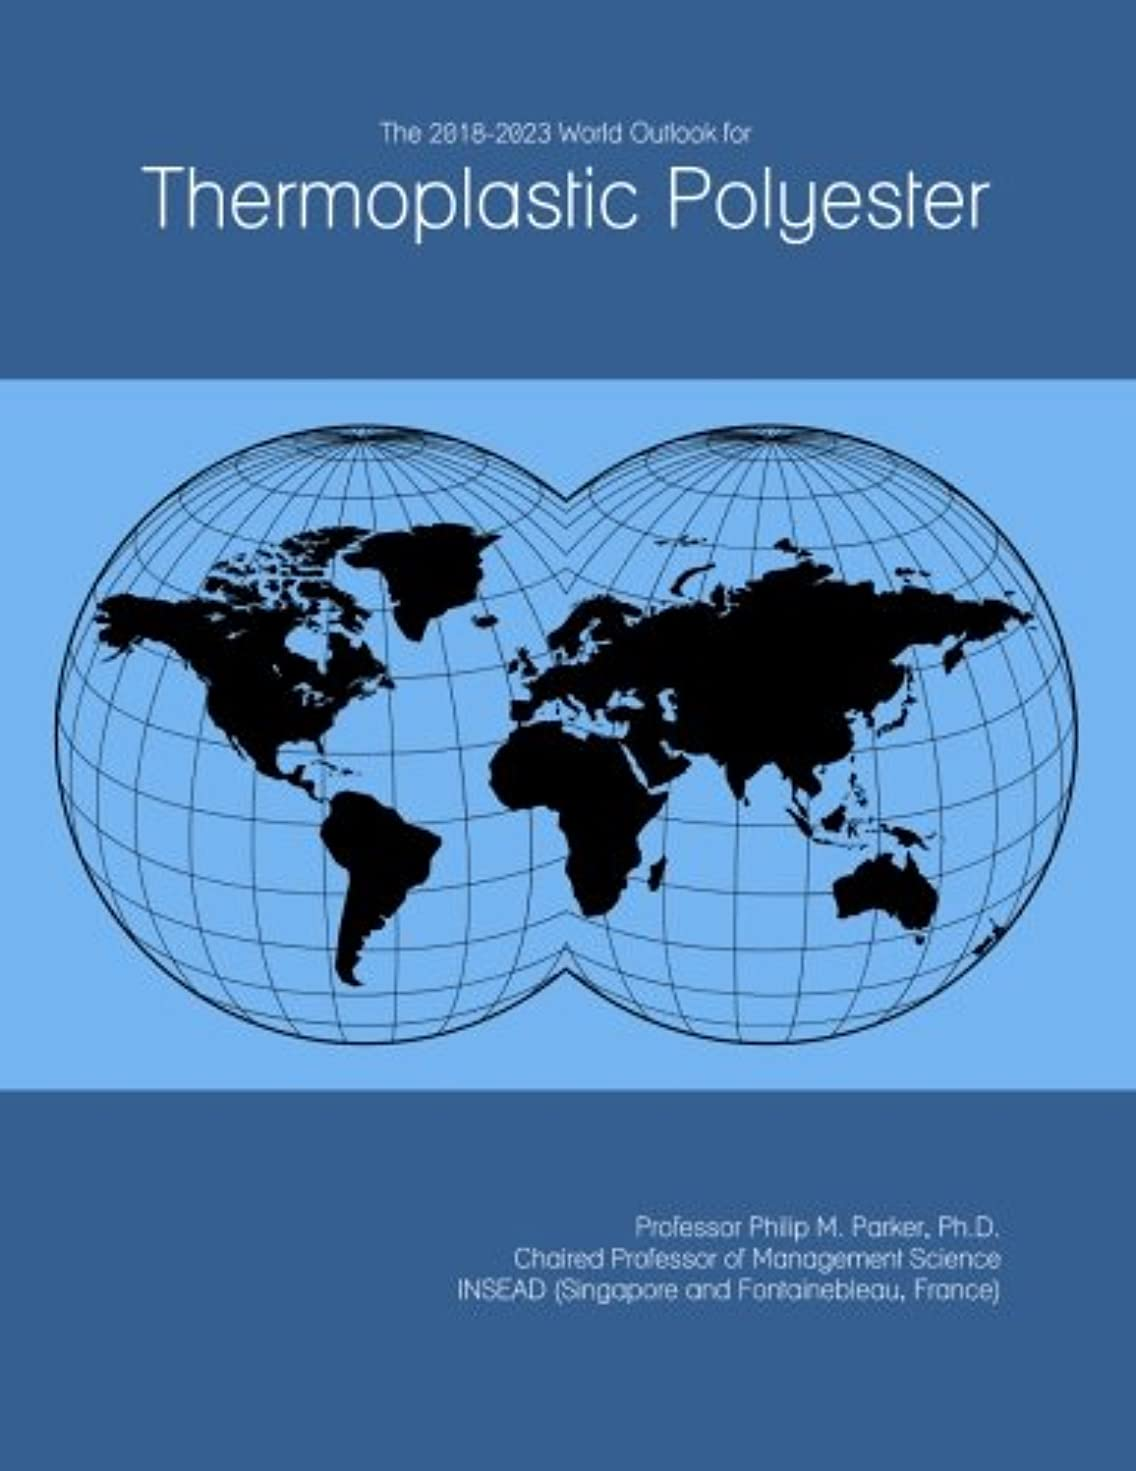 絶妙軸病んでいるThe 2018-2023 World Outlook for Thermoplastic Polyester